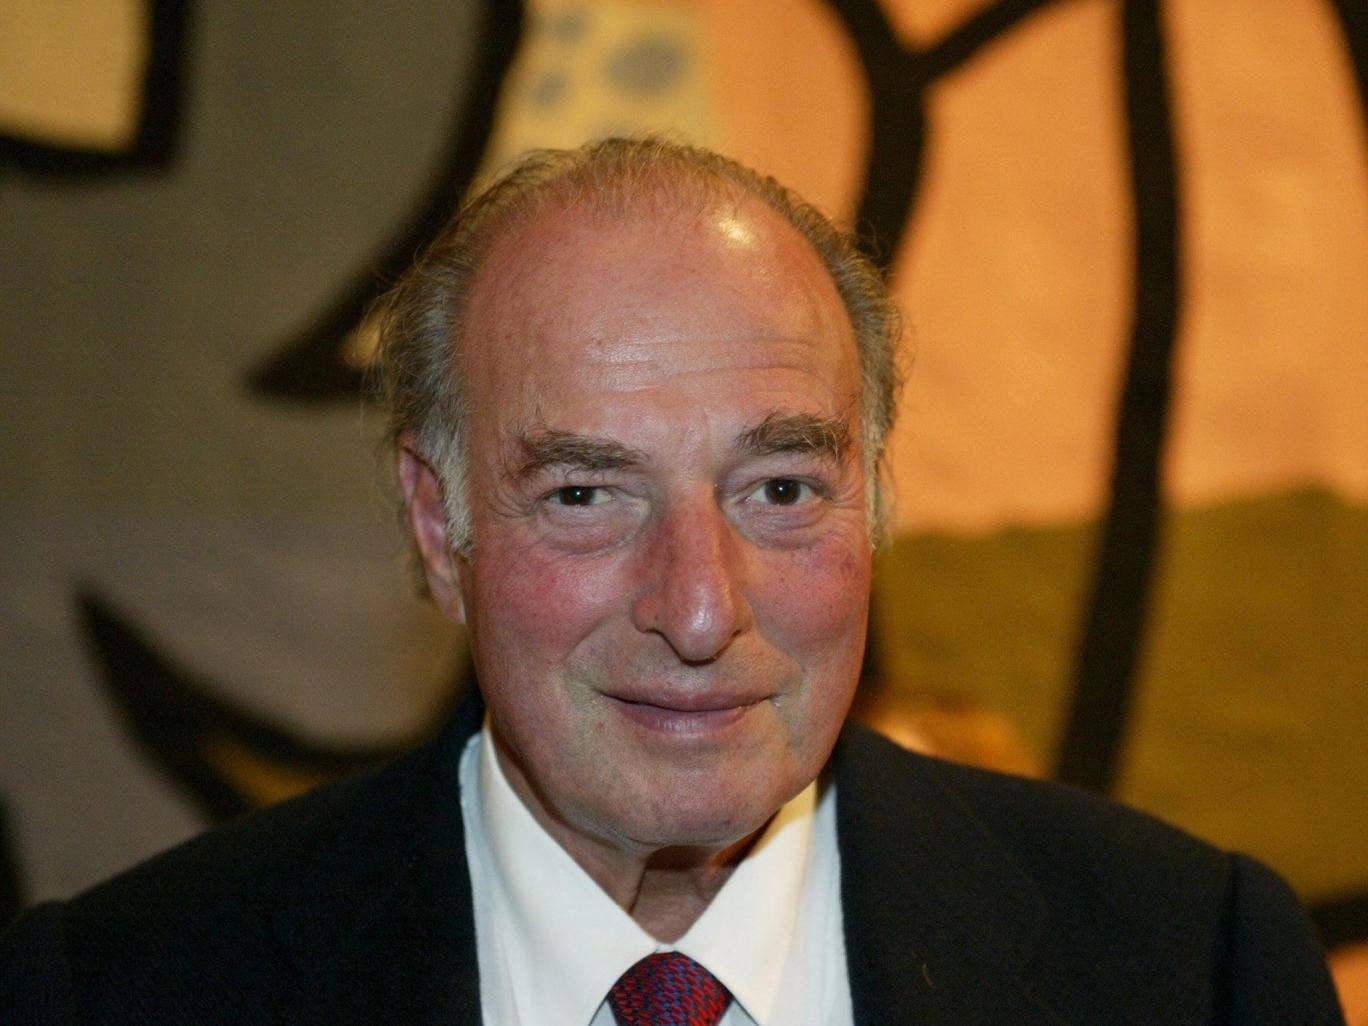 Belgian-born commodities trader Marc Rich and founder of Swiss giant Glencore Xstrata